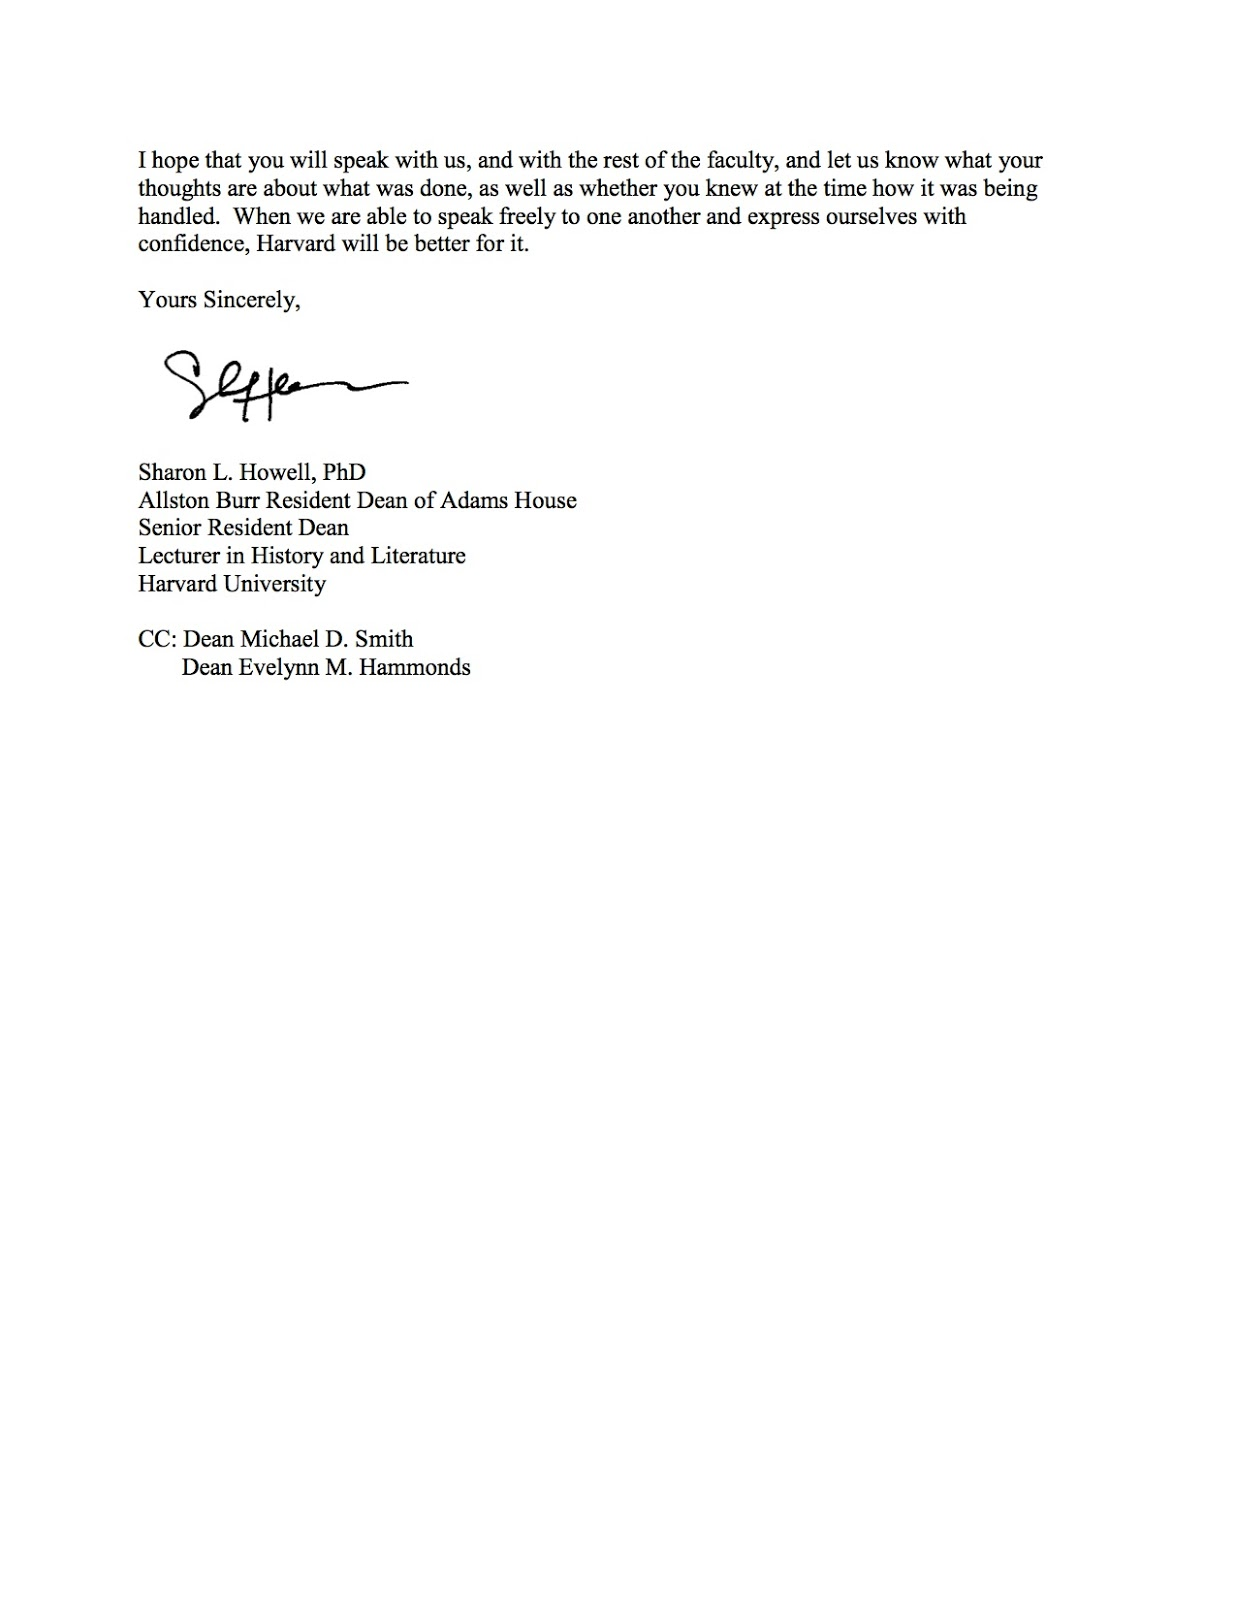 Two Weeks Notice Letter Letter To Drew Faust  Two Weeks Notice Letter